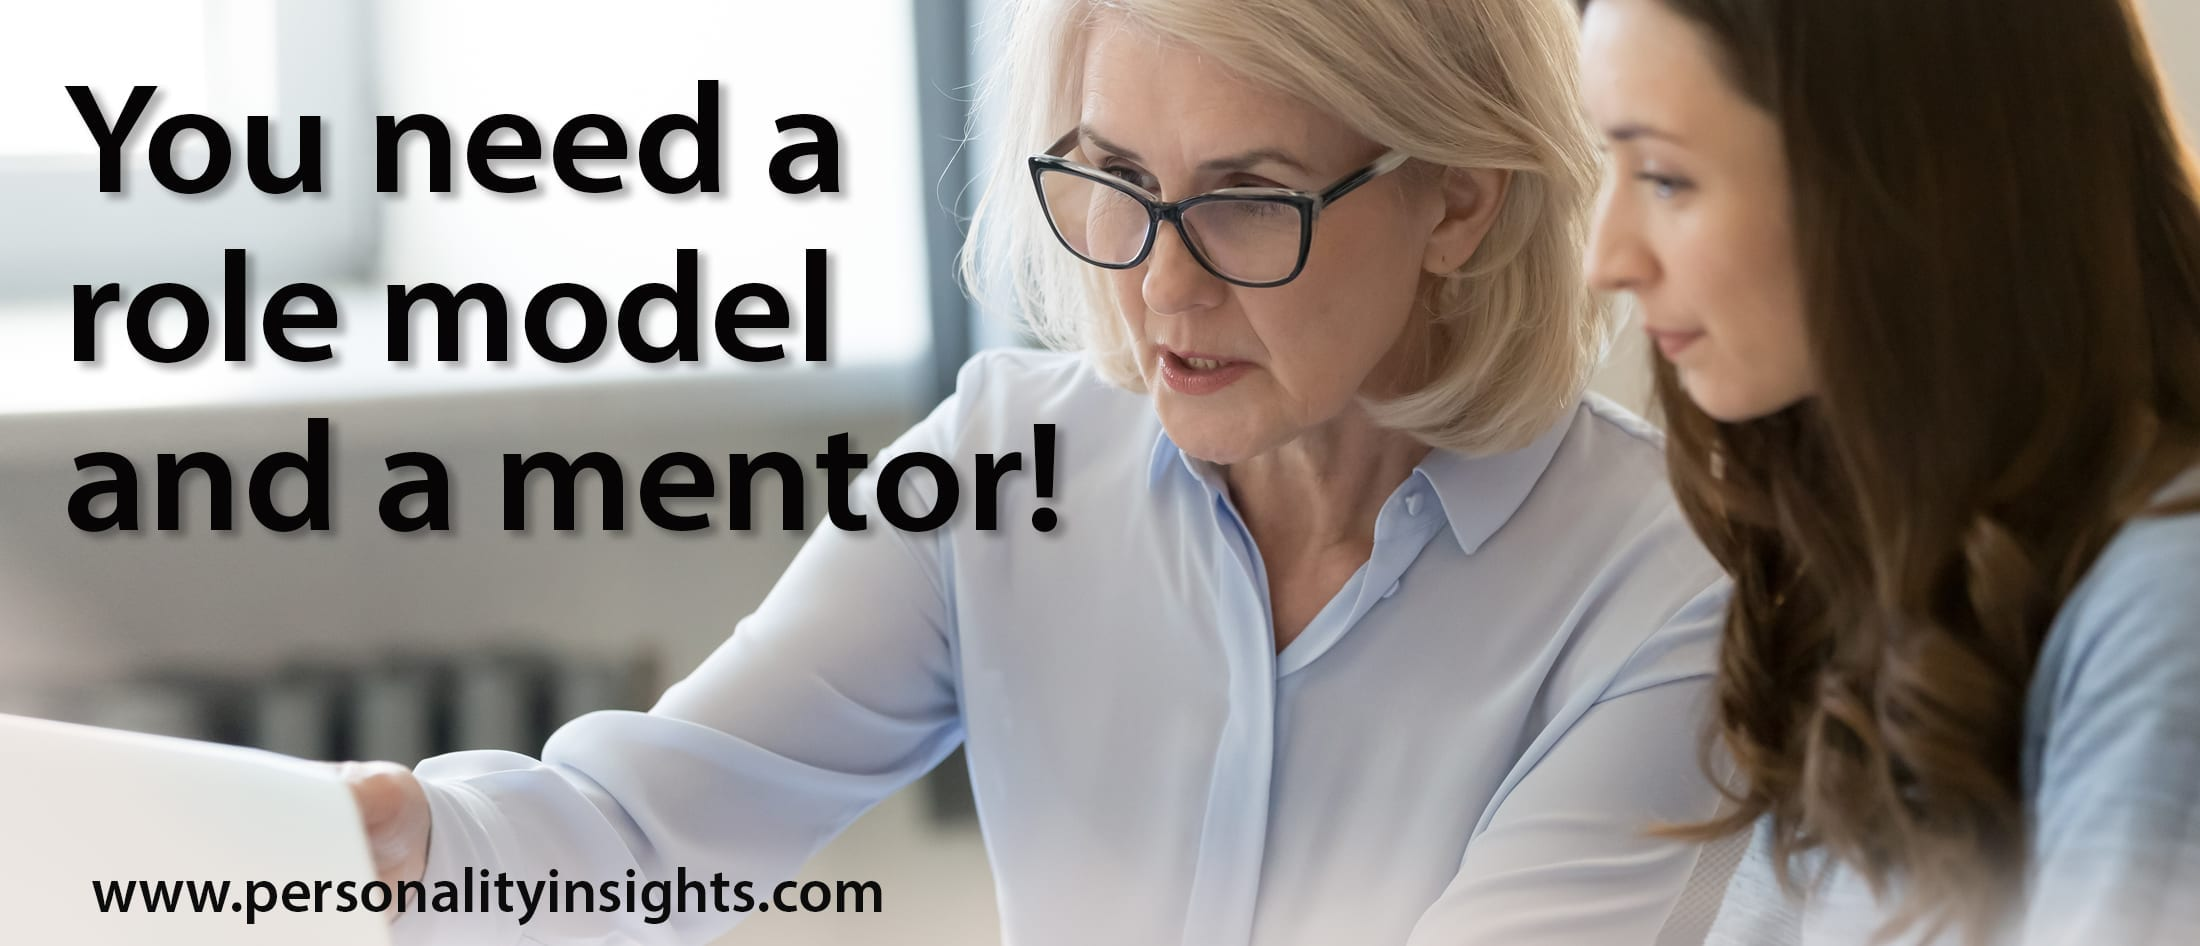 Tip: You need a role model and a mentor!